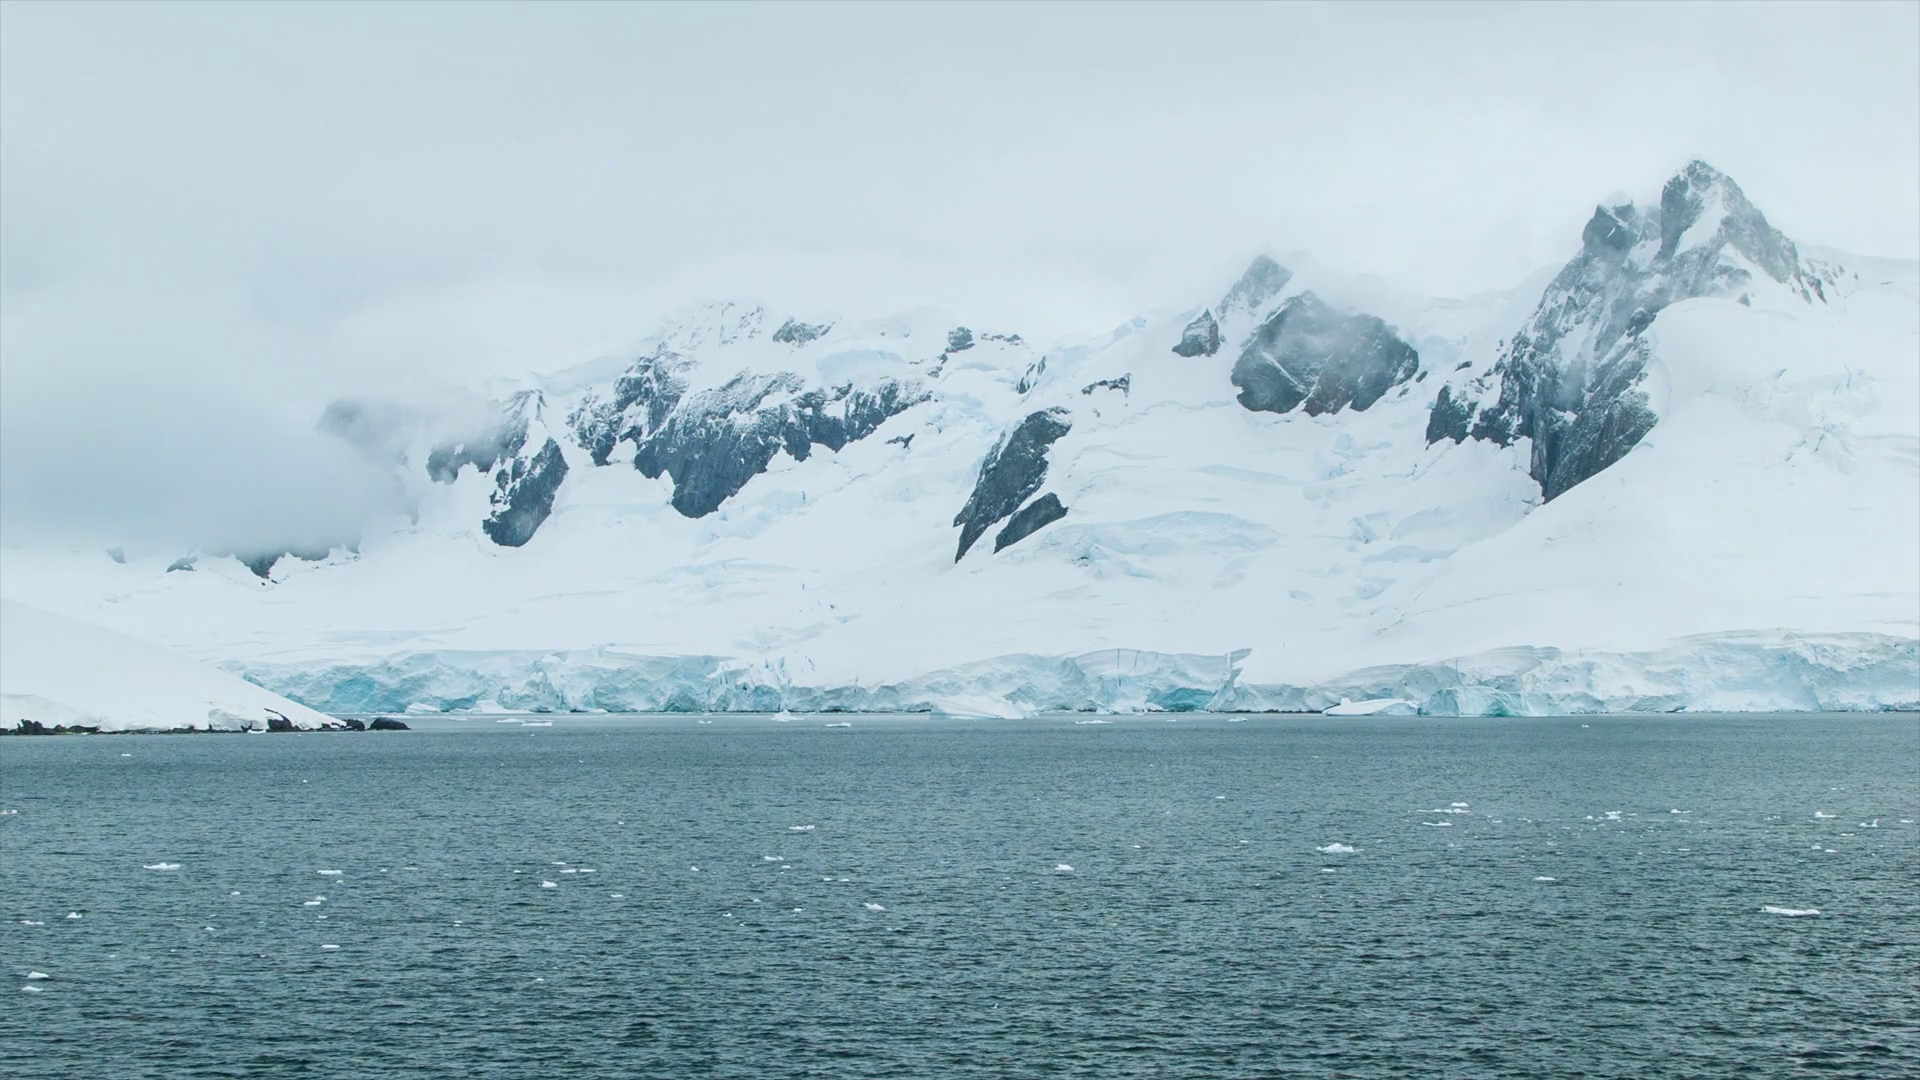 Freezing Cold Antarctica with Tall Ice Covered Mountains and Moving ...